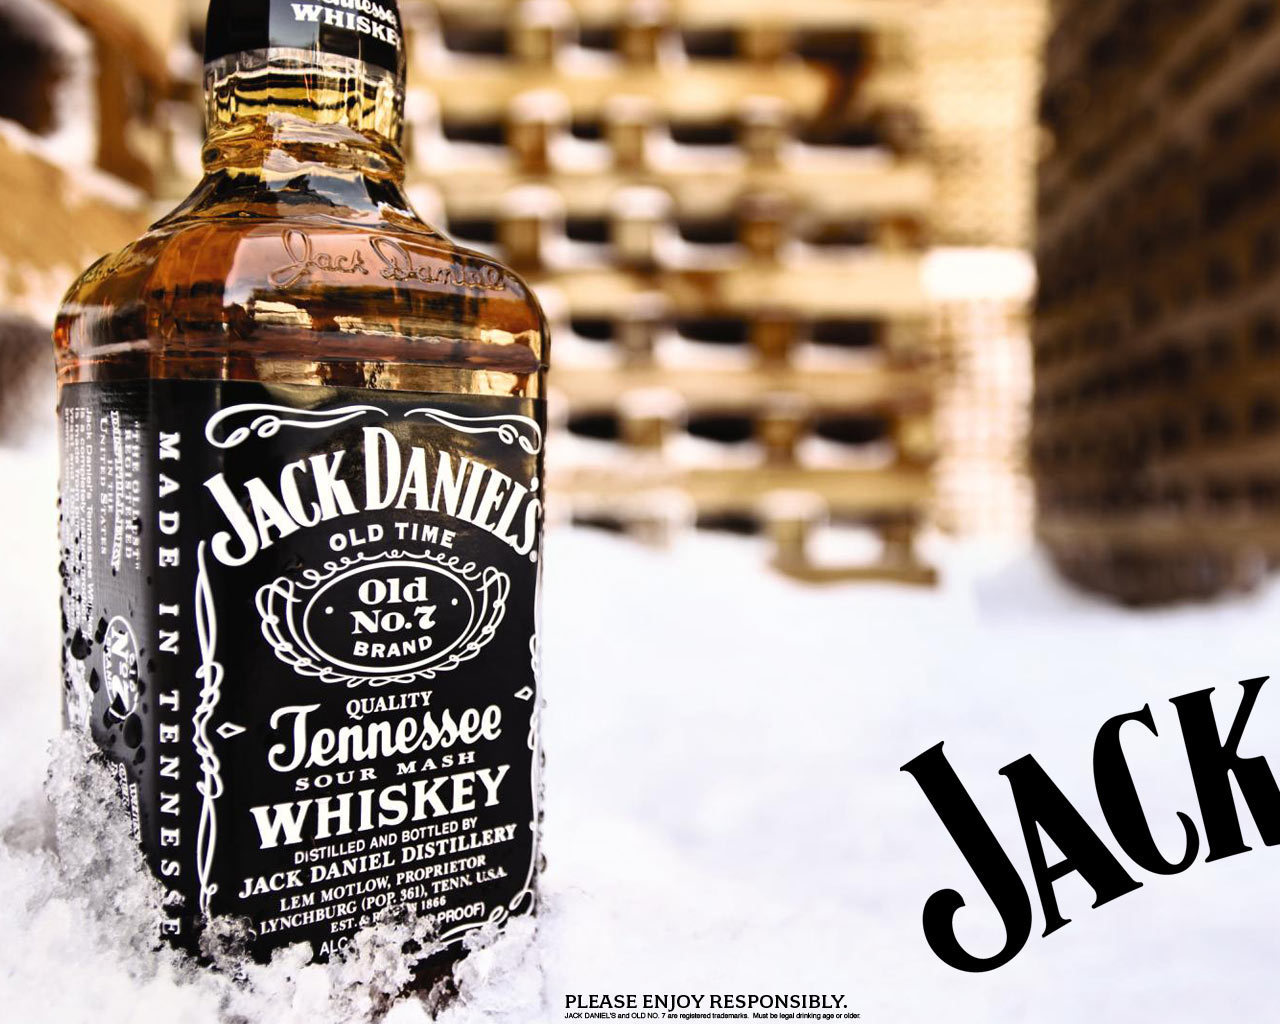 jack daniel 39 s images jack daniel 39 s hd wallpaper and background photos 6763063